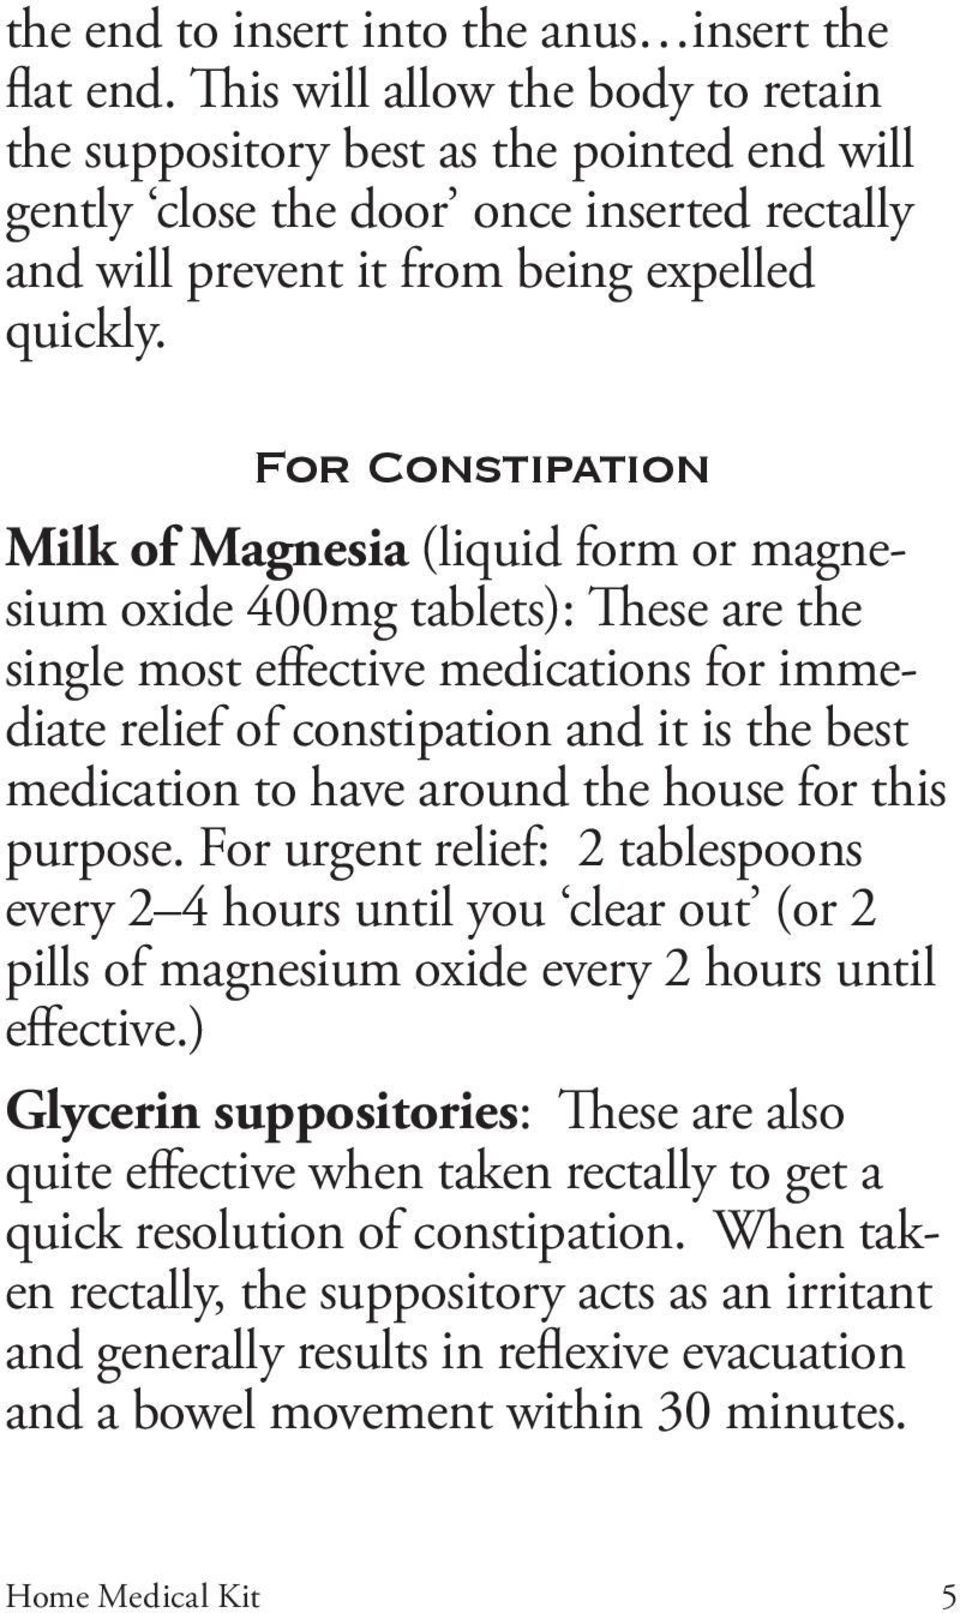 For Constipation Milk of Magnesia (liquid form or magnesium oxide 400mg tablets): These are the single most effective medications for immediate relief of constipation and it is the best medication to